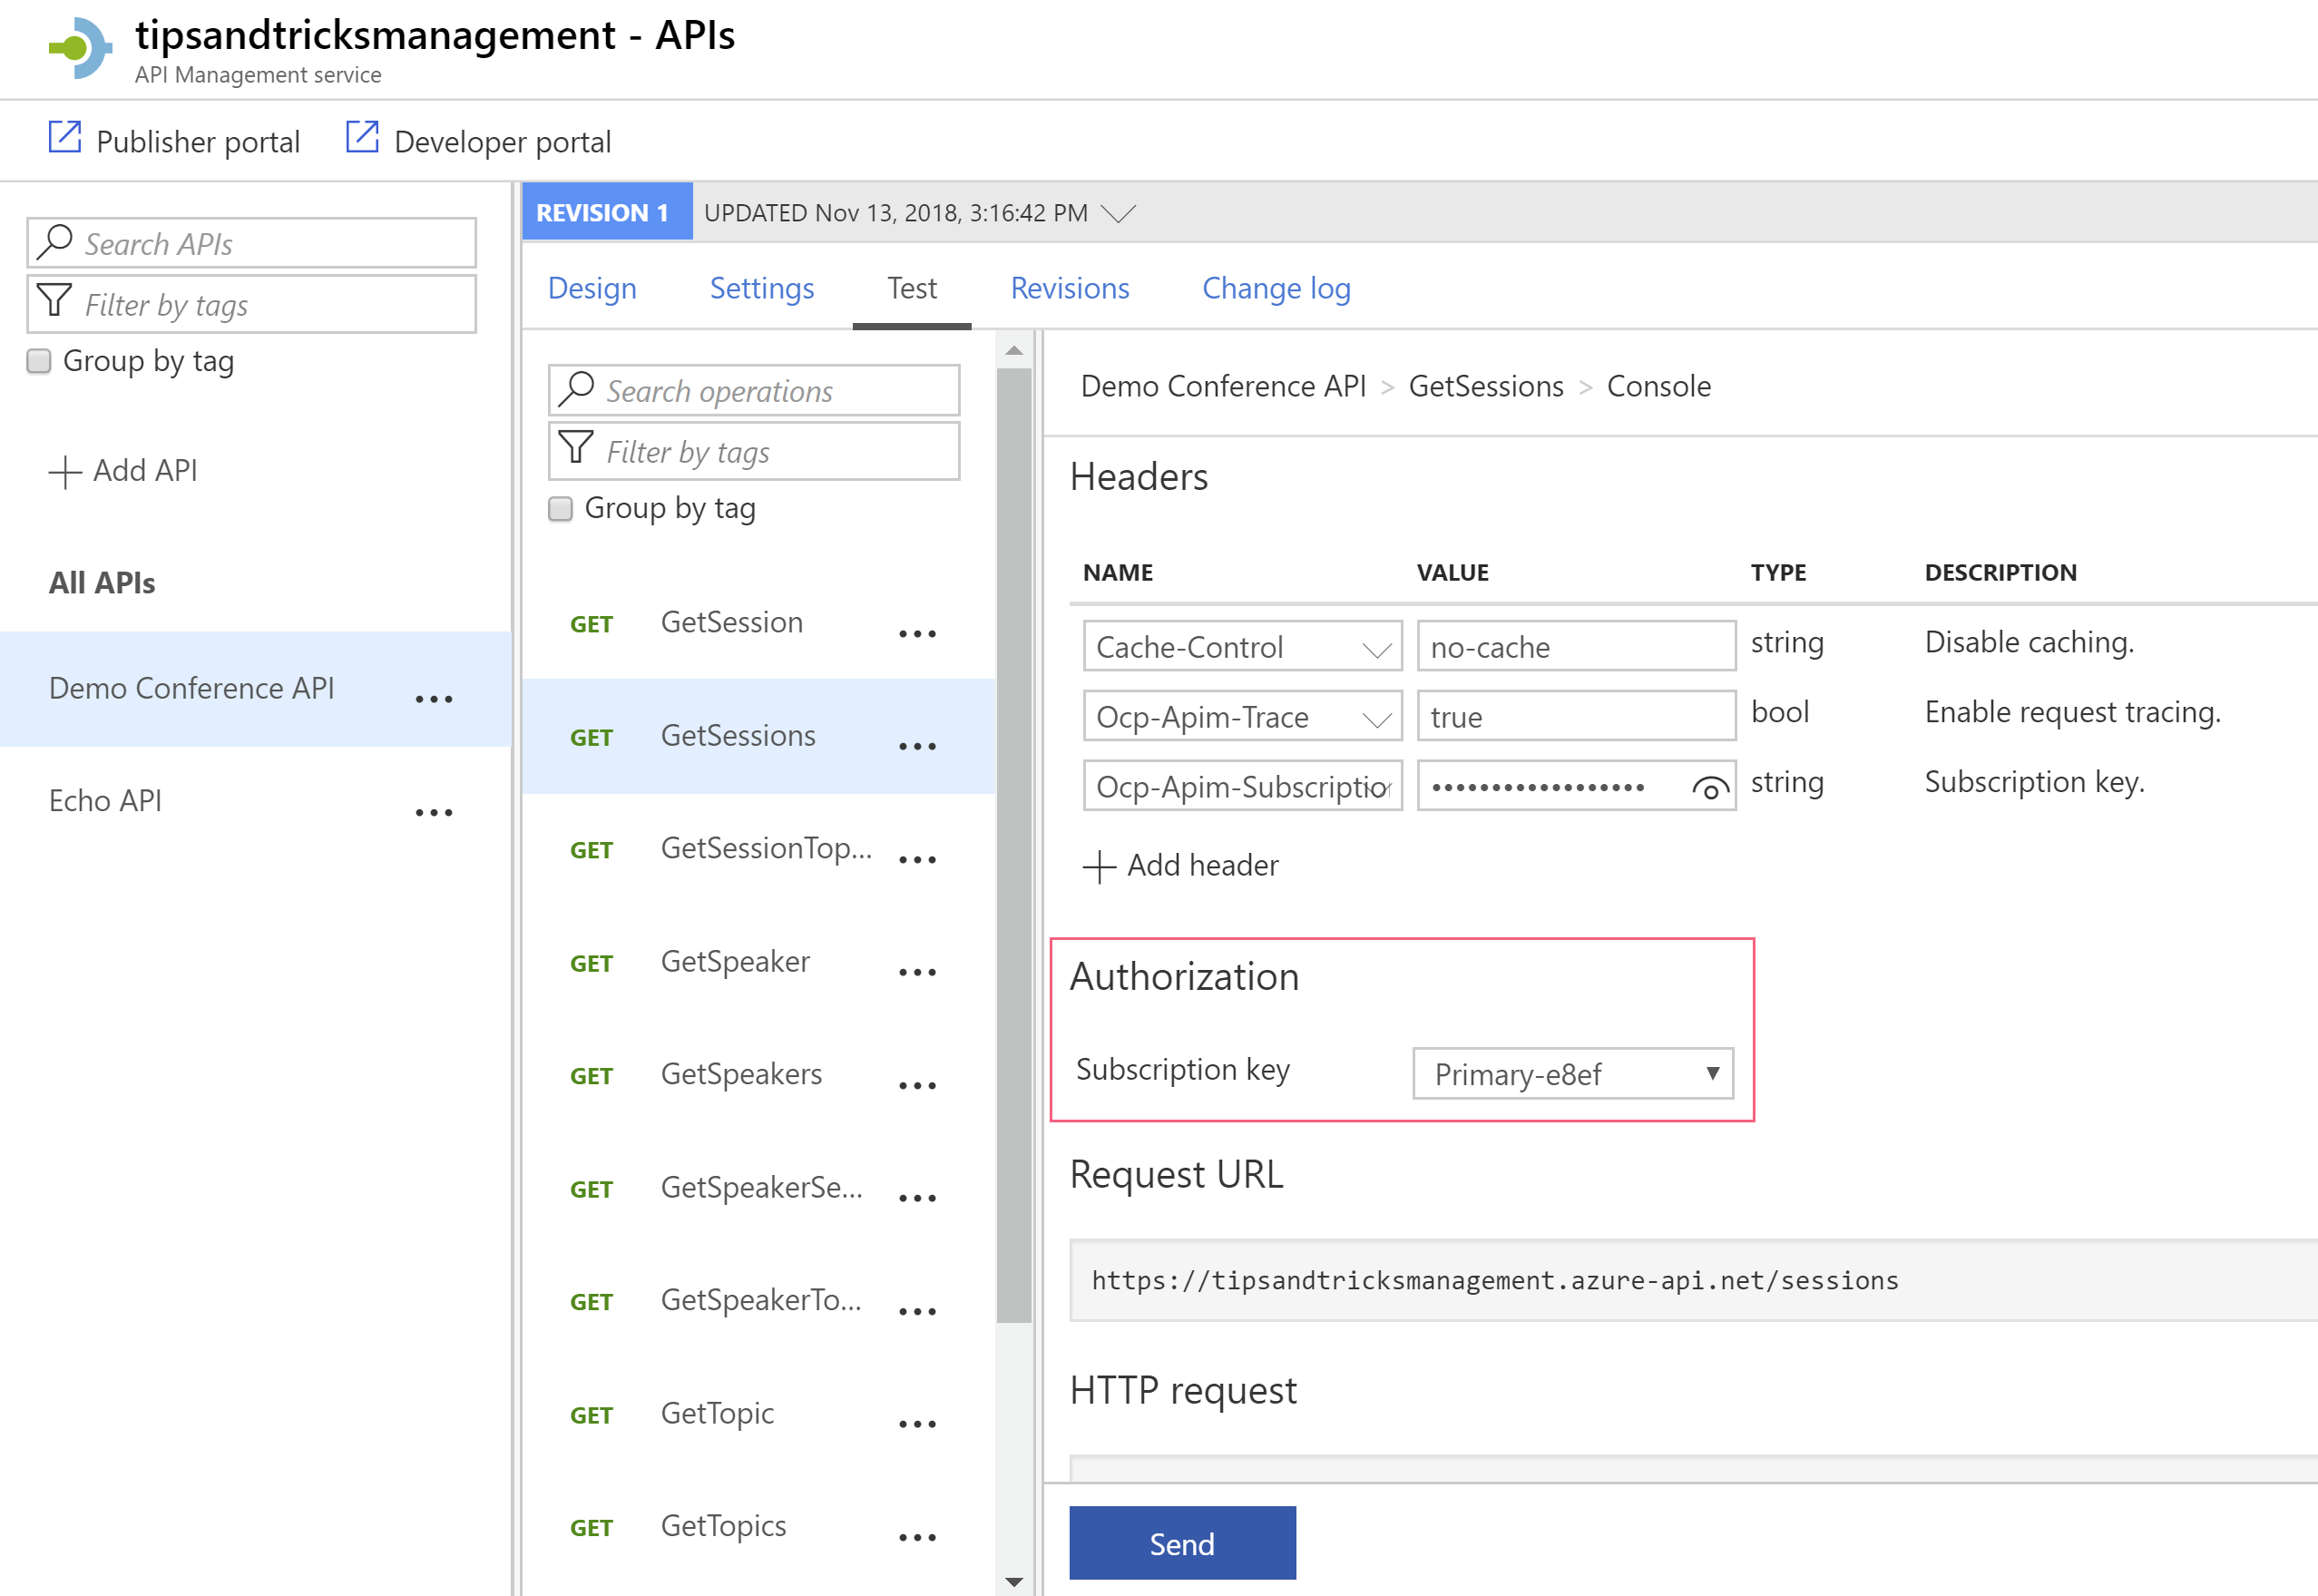 Tip 197 - Getting started with Azure API Management | Azure